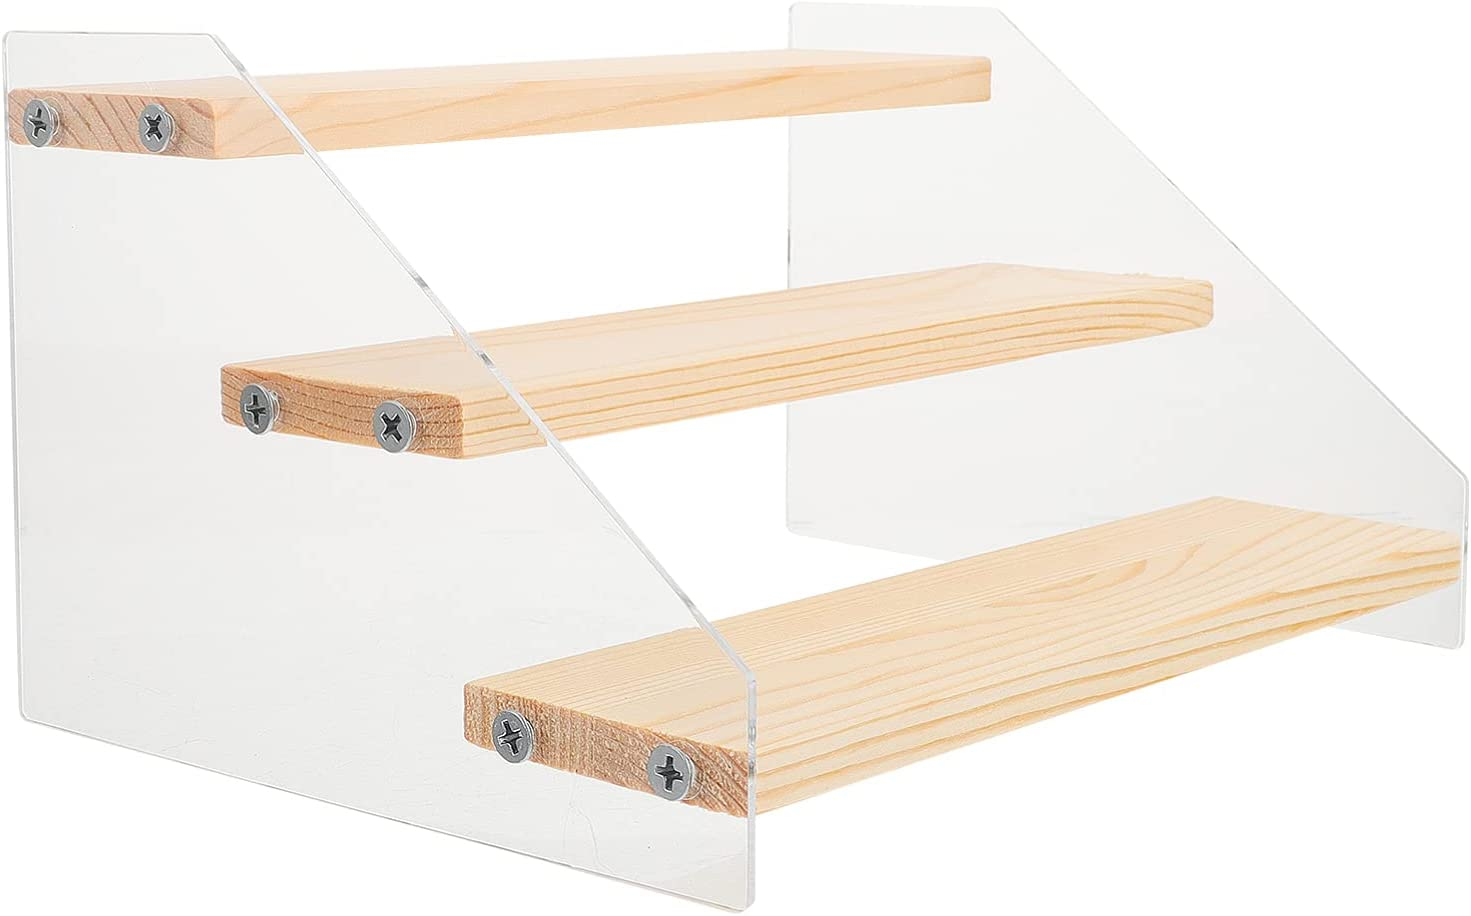 Max 66% OFF Luxshiny Clear Acrylic Baltimore Mall Wood Display Cupcake Stand Holder Dessert